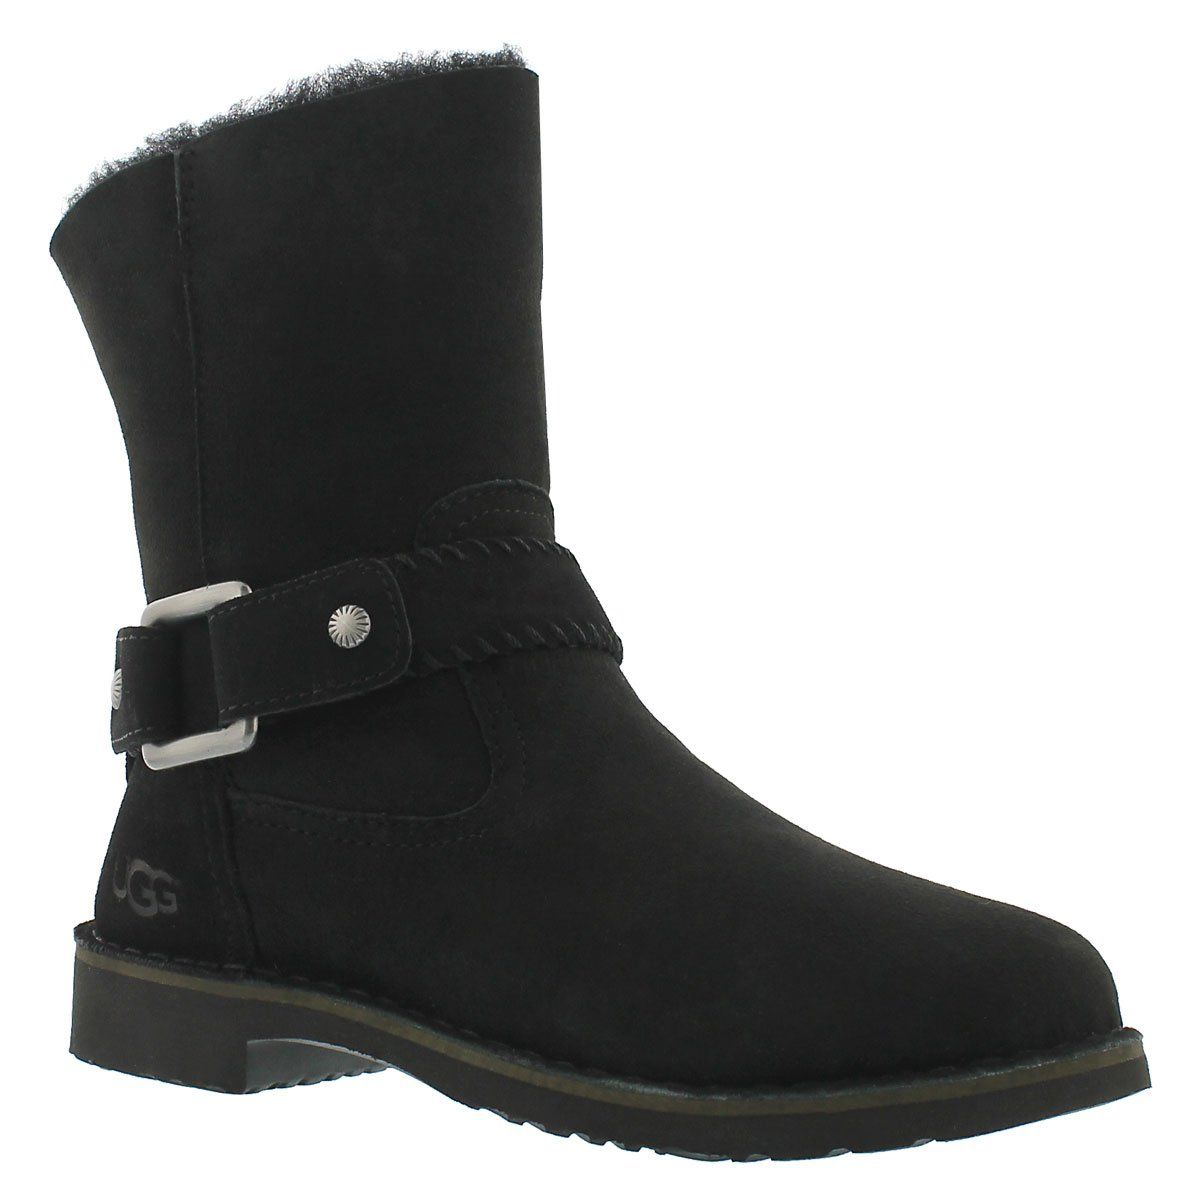 Ugg Cedric black fold down sheepskin boot | Shoes, shoes